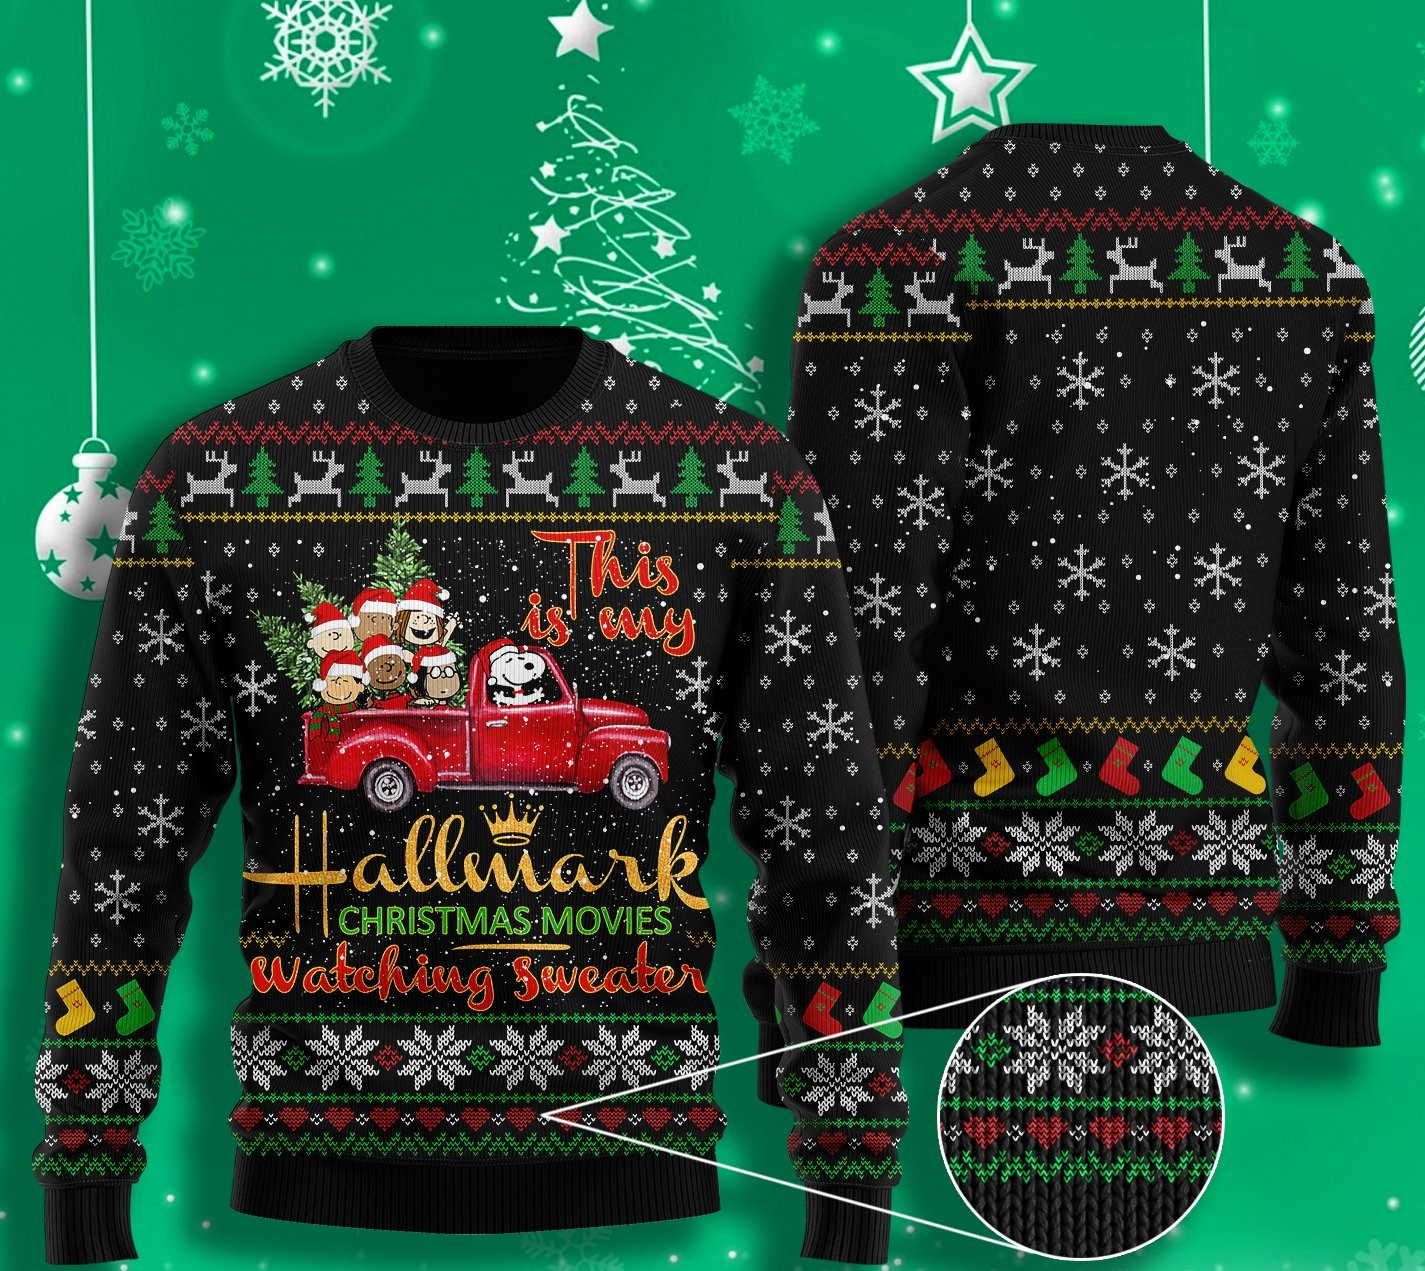 this is my hallmark christmas movie watching all over printed ugly christmas sweater 2 - Copy